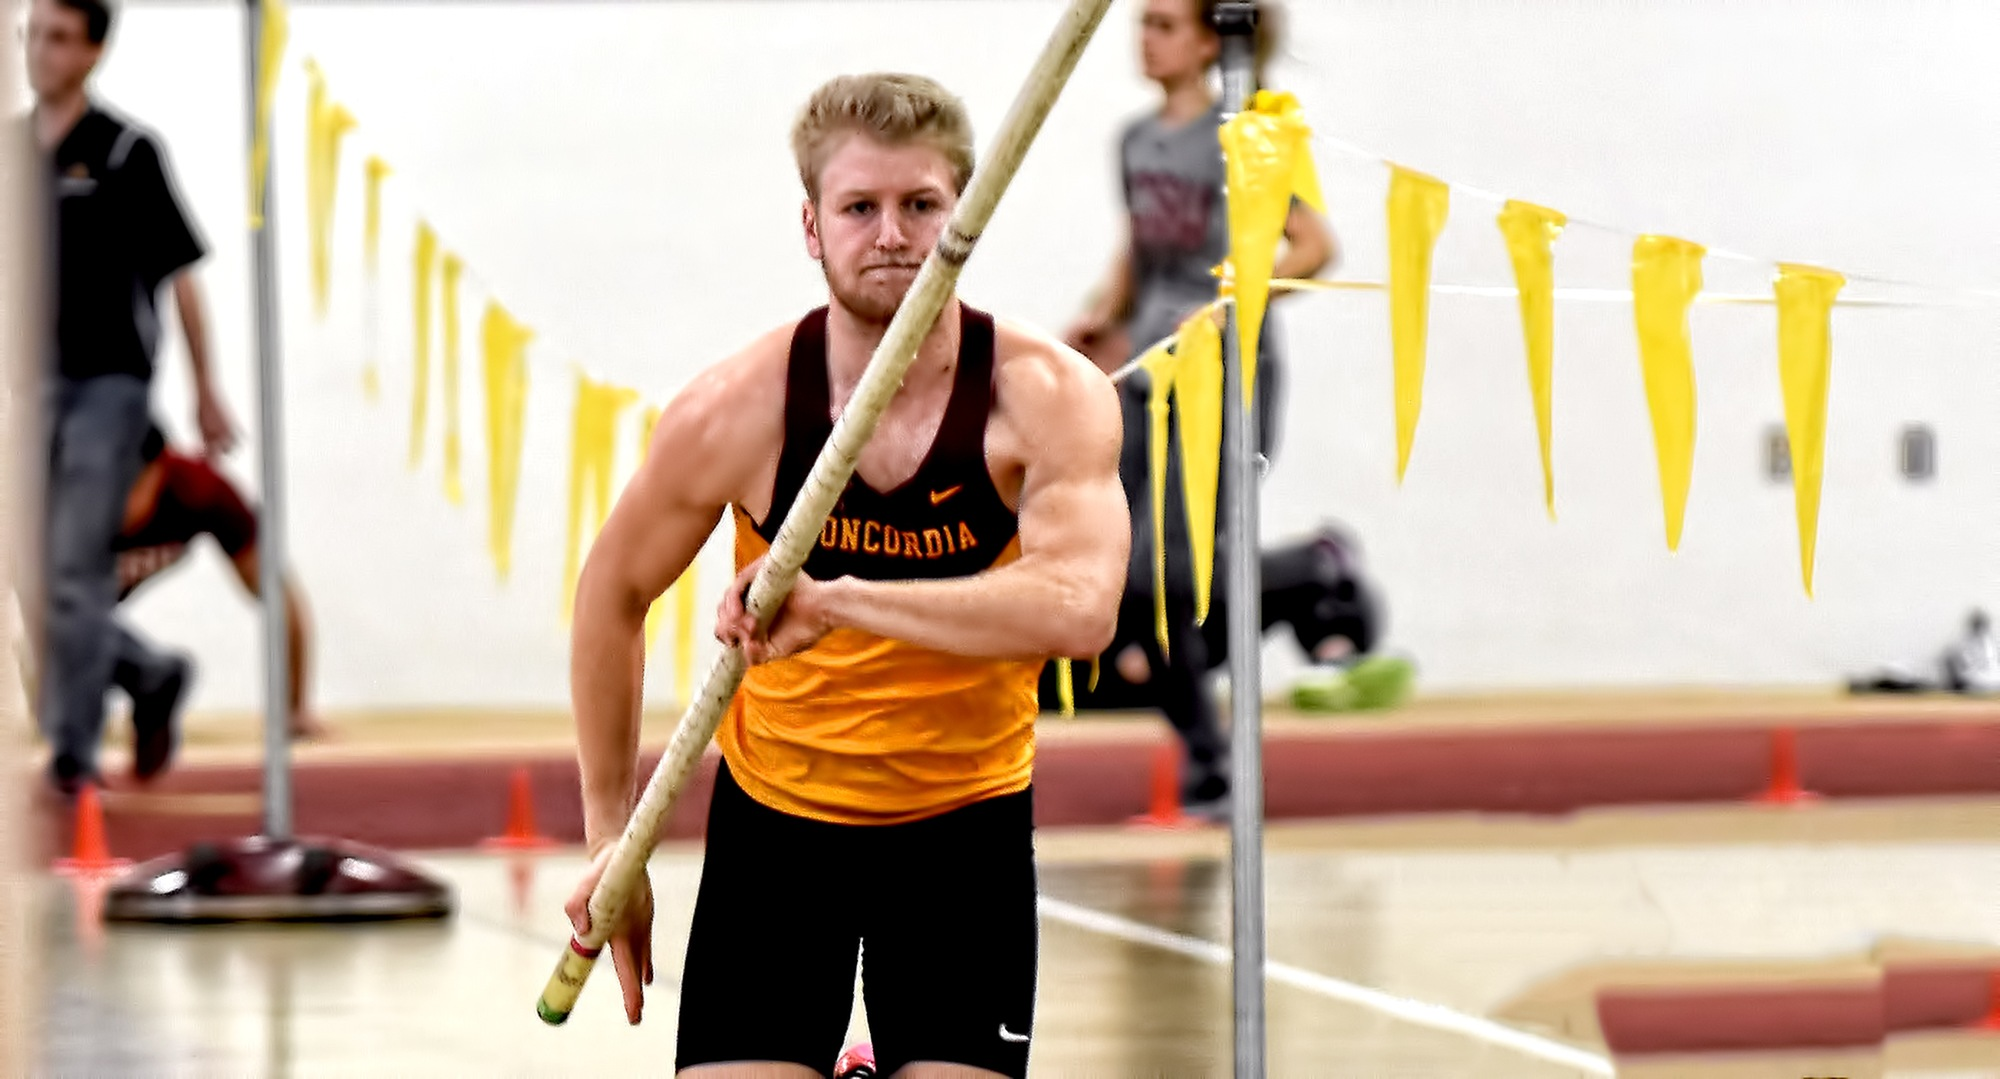 Matt Bye posted the top height in the pole vault in the MIAC heptathlon which helped him earn his second straight conference indoor multi-event crown.